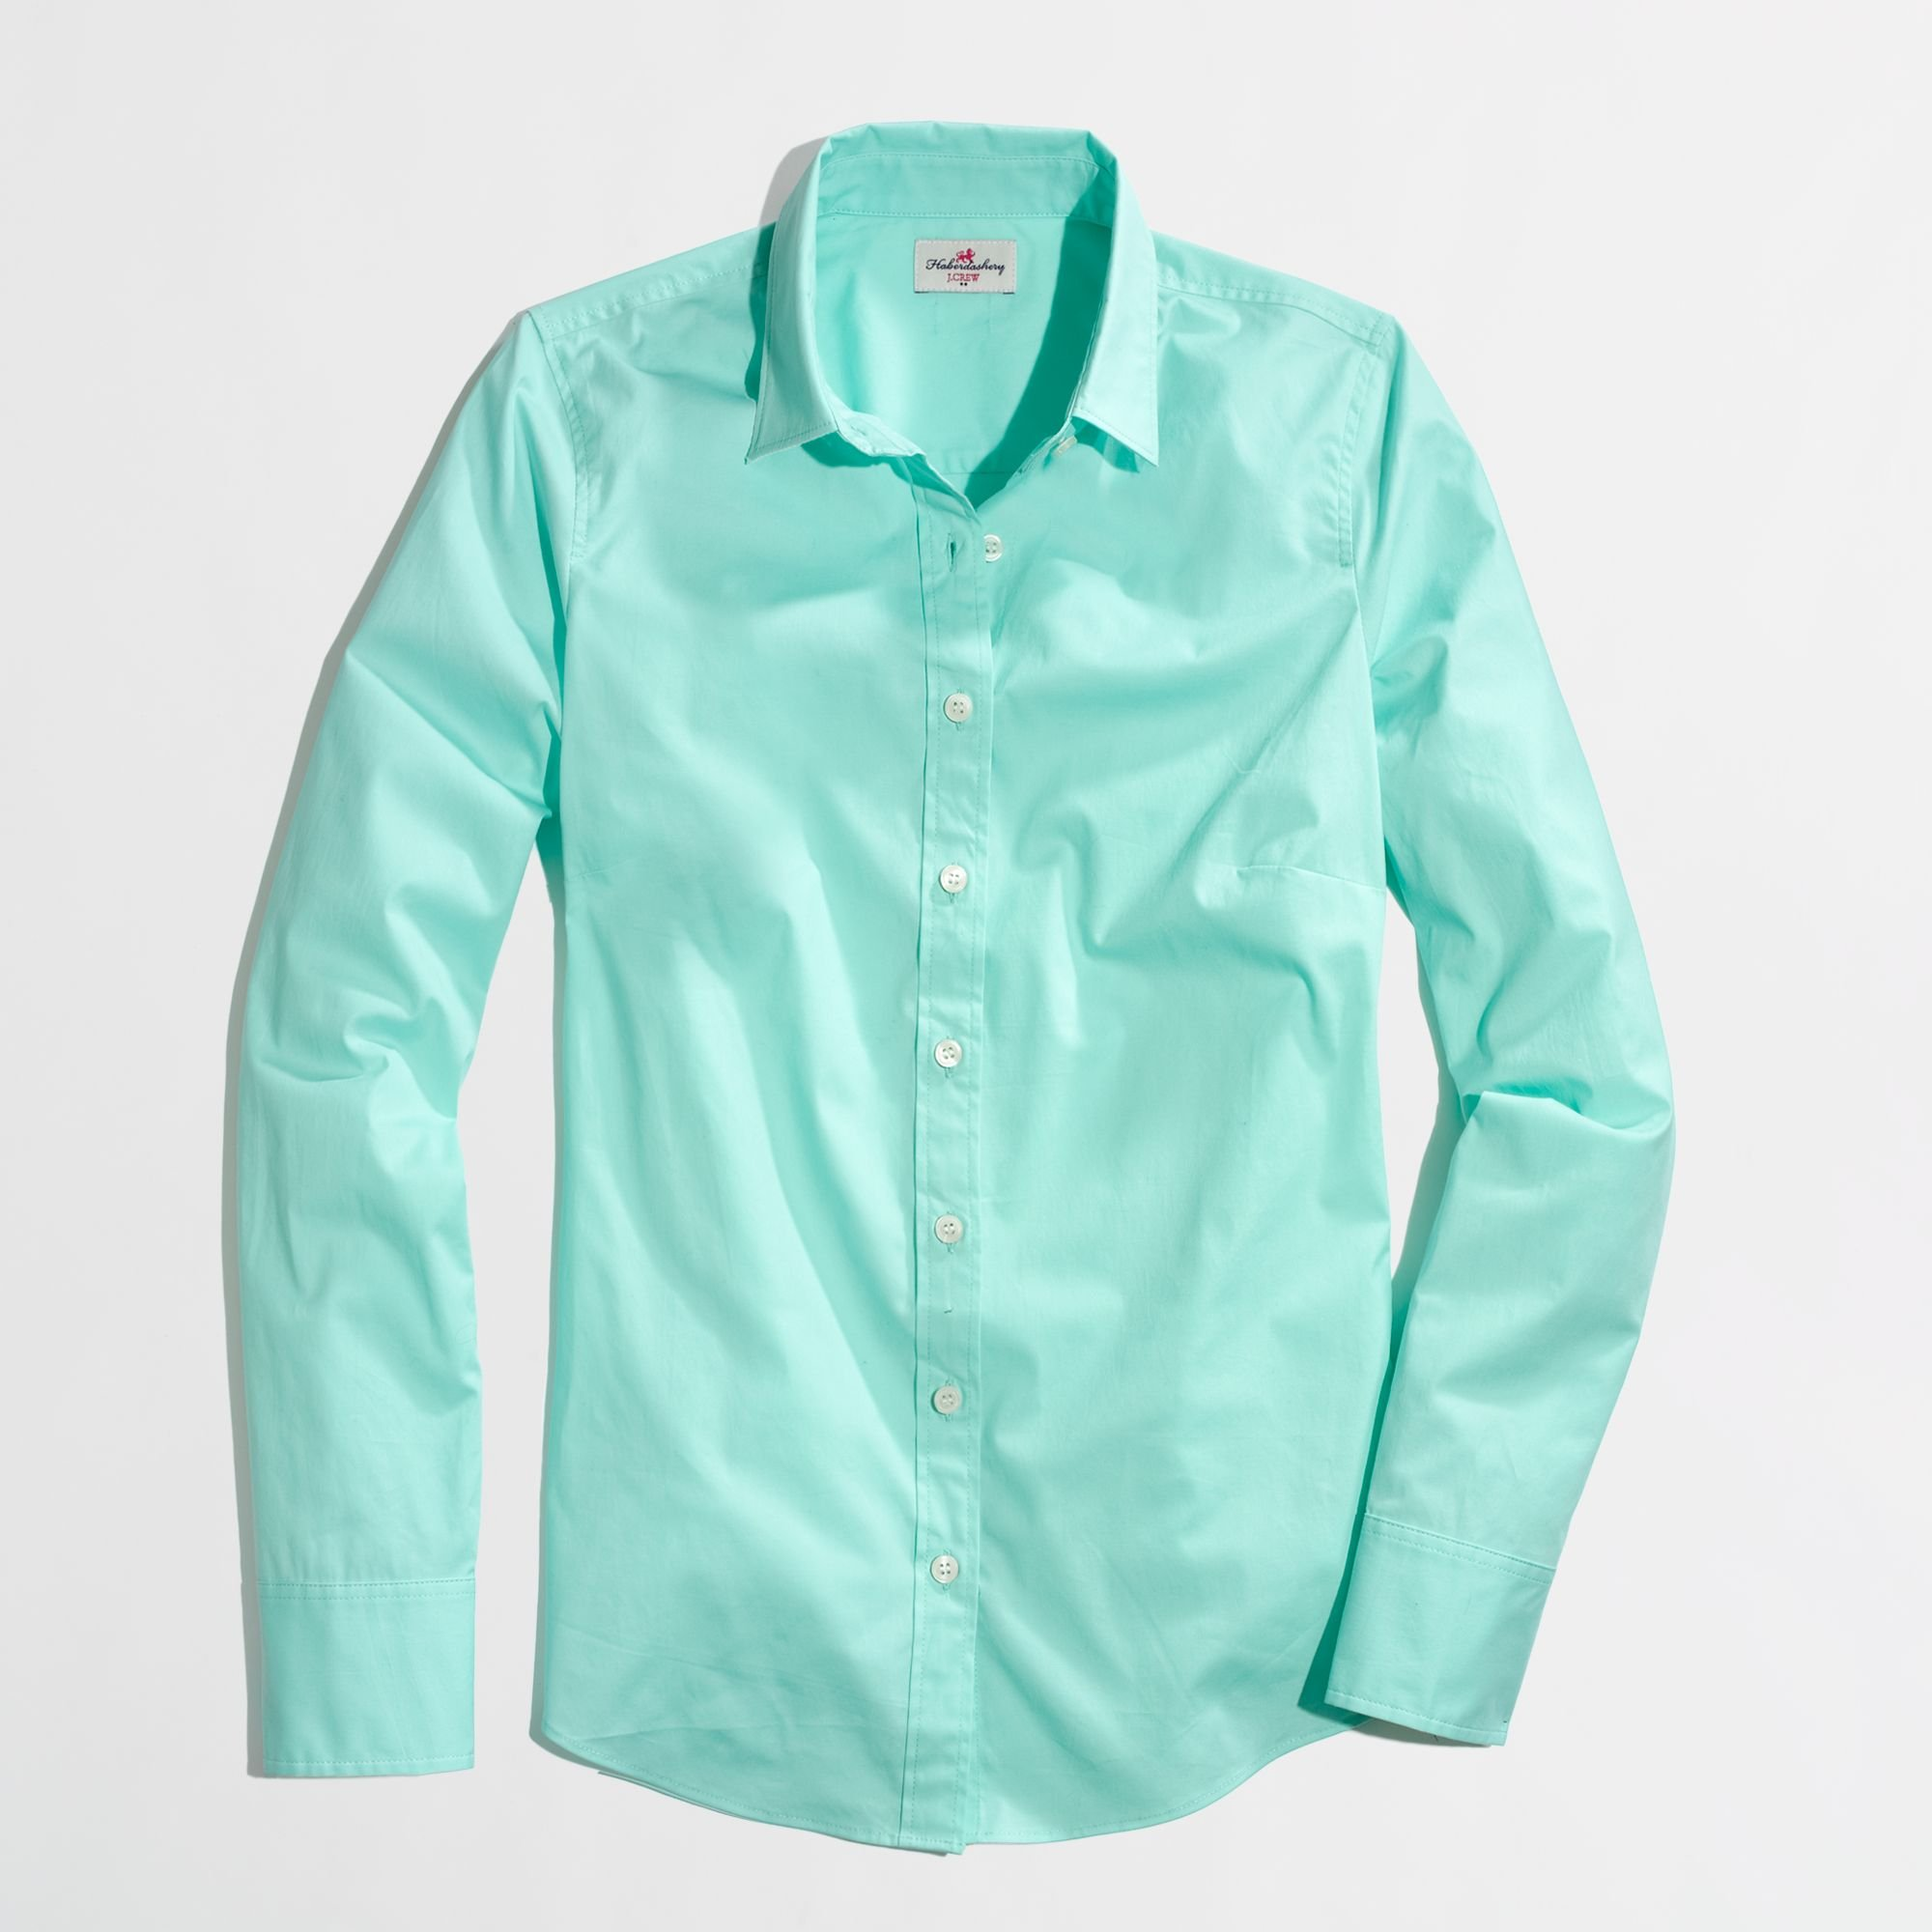 Aqua Button Down Shirt | Artee Shirt